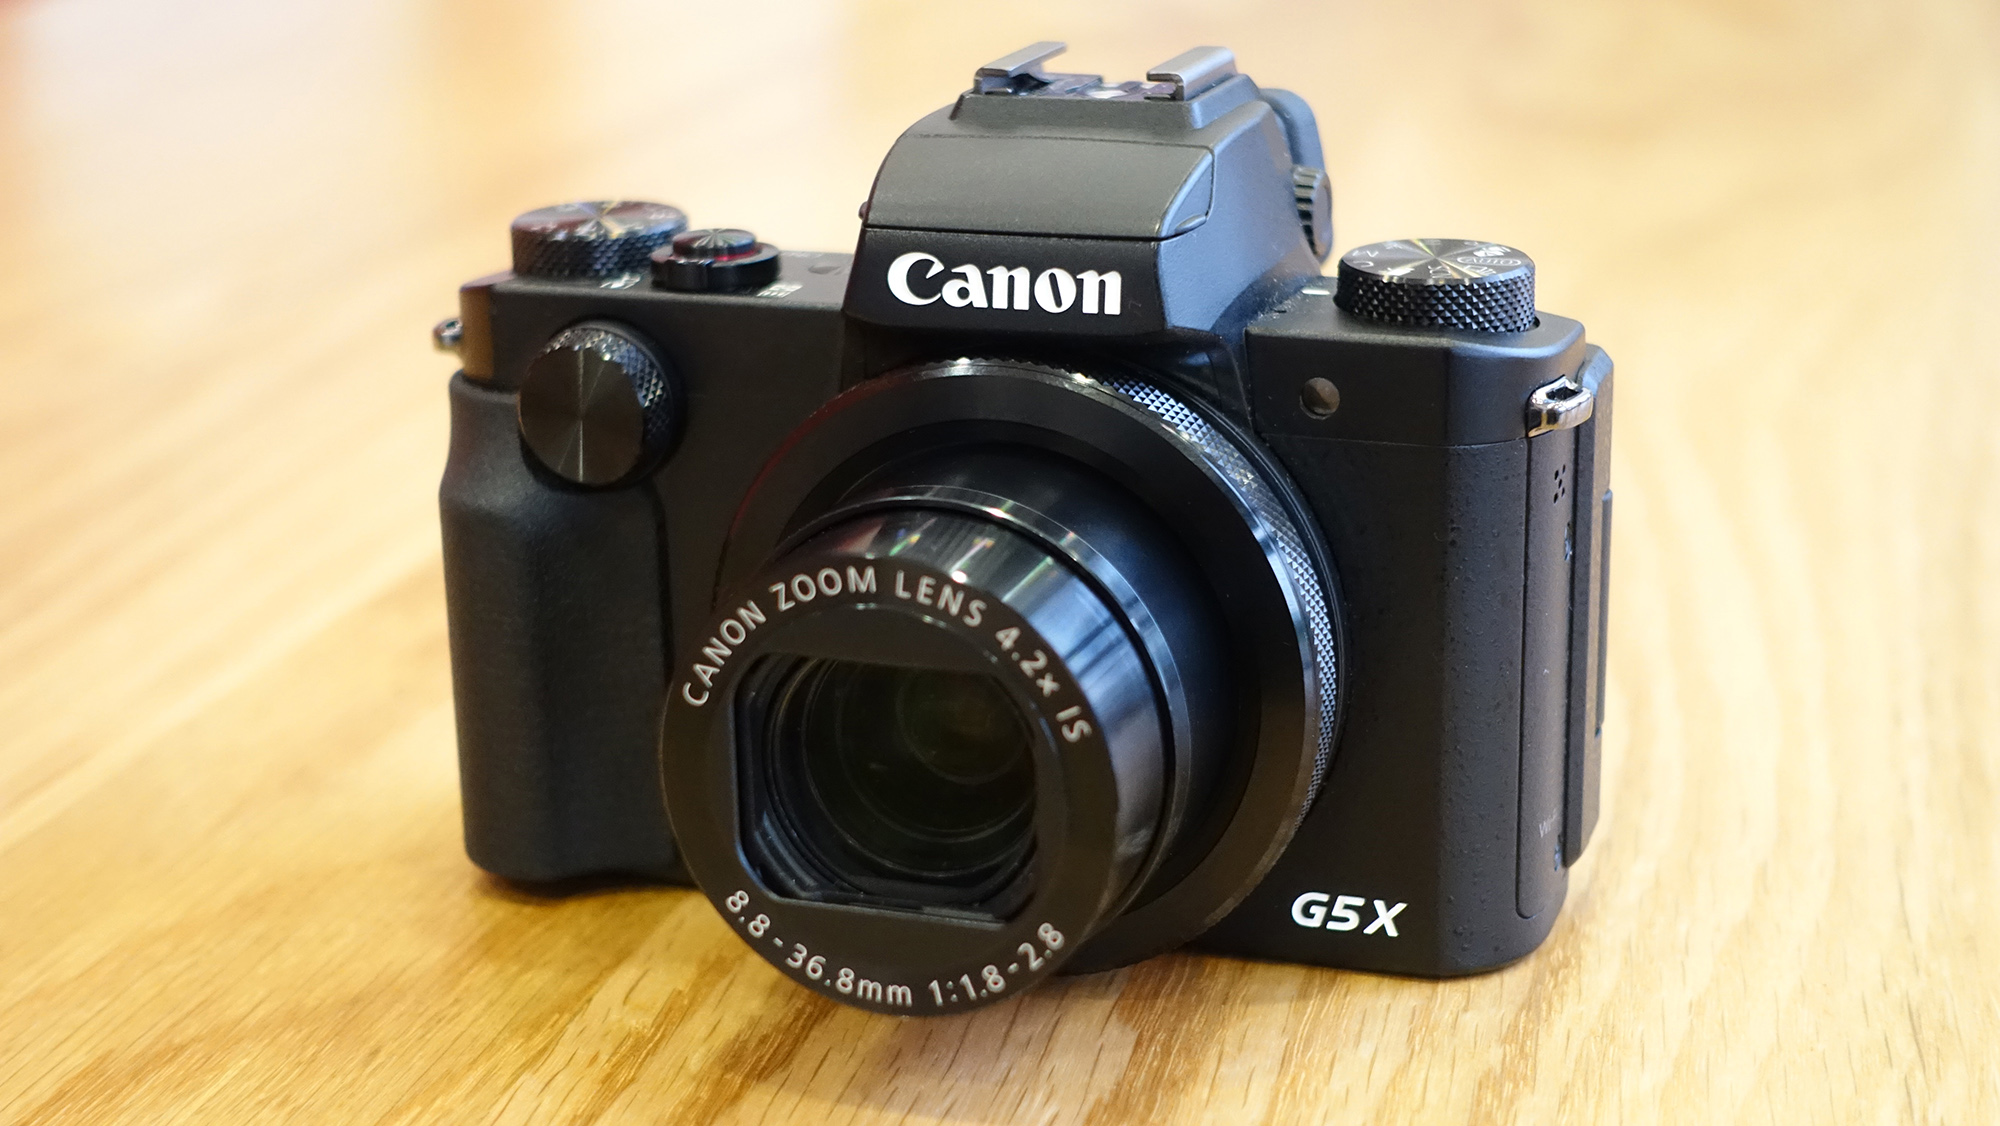 Canon G5 X Review An Slr In Your Pocket Expert Reviews